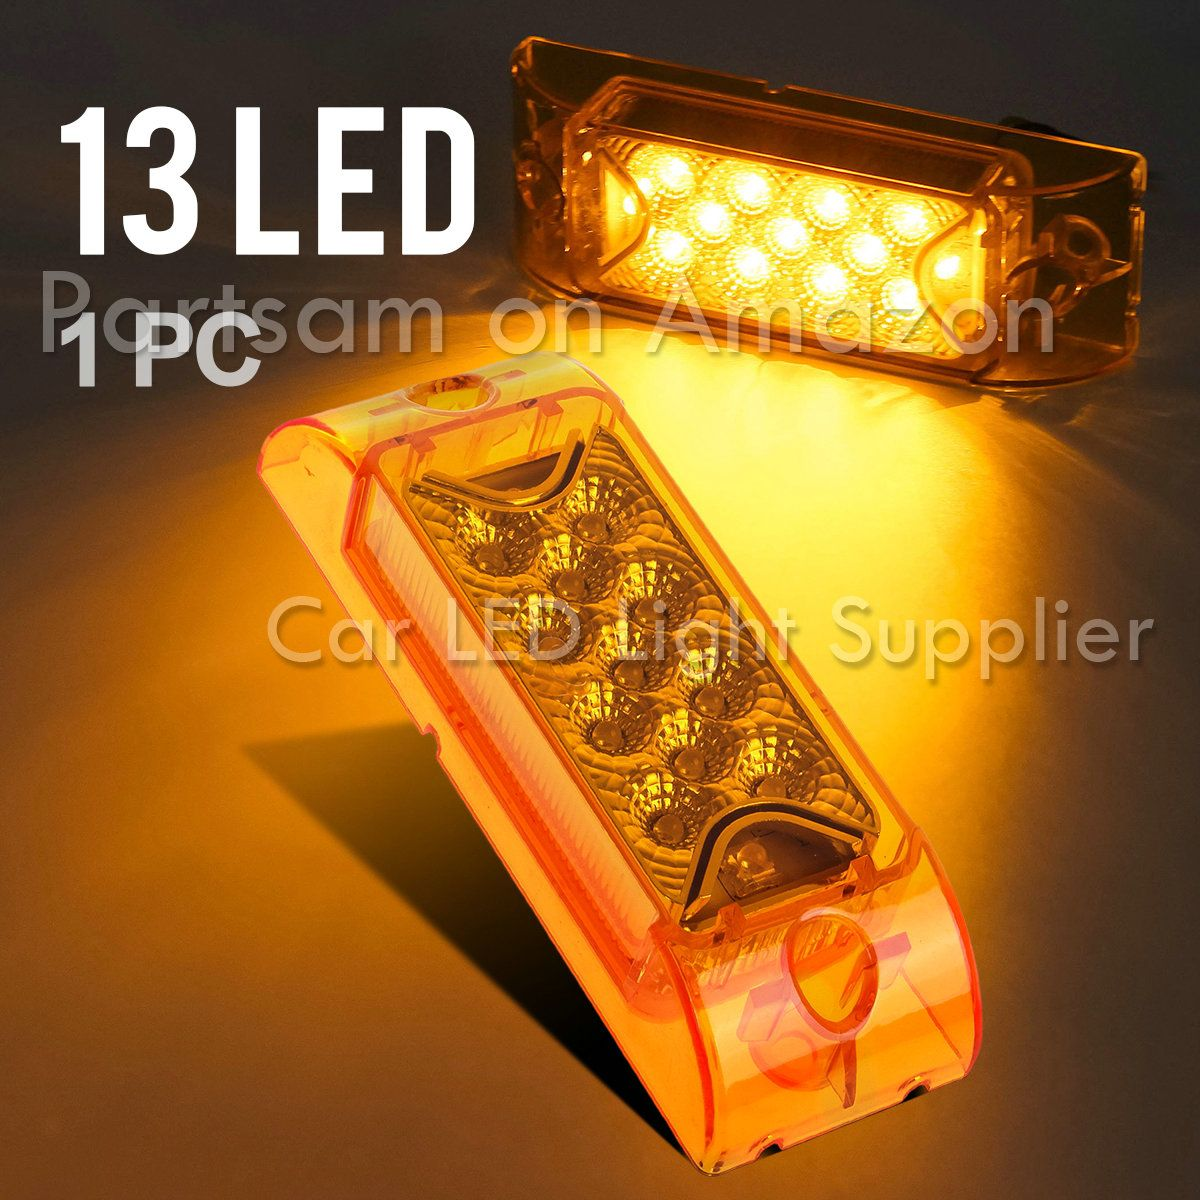 Partsam 2pcs amber led rectangle tail stop marker light trailer partsam 2pcs amber led rectangle tail stop marker light trailer truck rv 3 wires 21led 6 sciox Choice Image